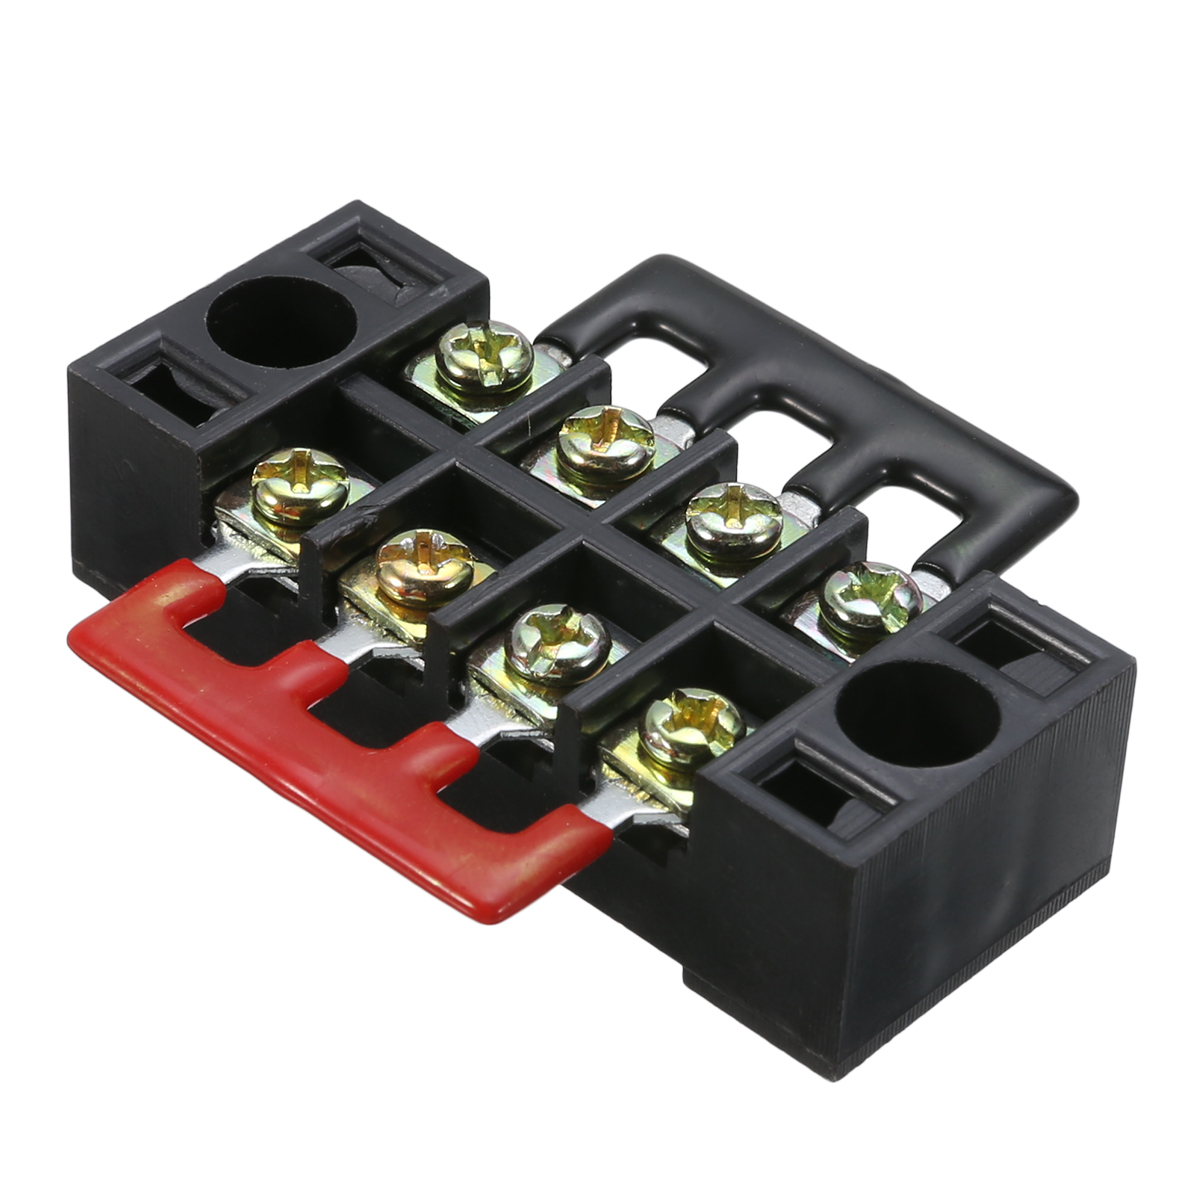 600V 15A 4P Double Row Wire Barrier Terminal Block With 2 Connector Strips Power Distribution Terminal for Electronic Circuit image